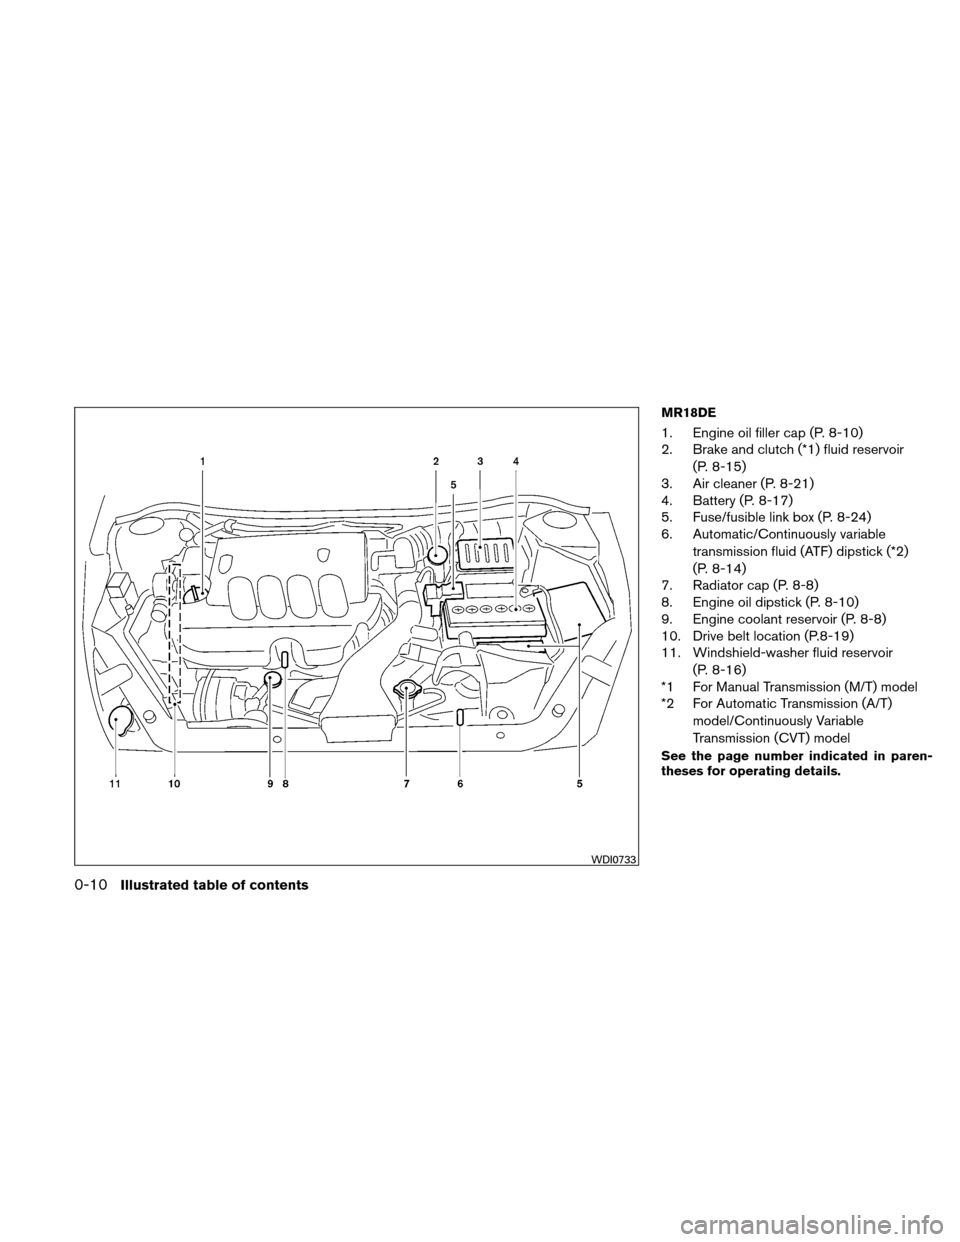 NISSAN VERSA HATCHBACK 2011 1.G Owners Manual, Page 17